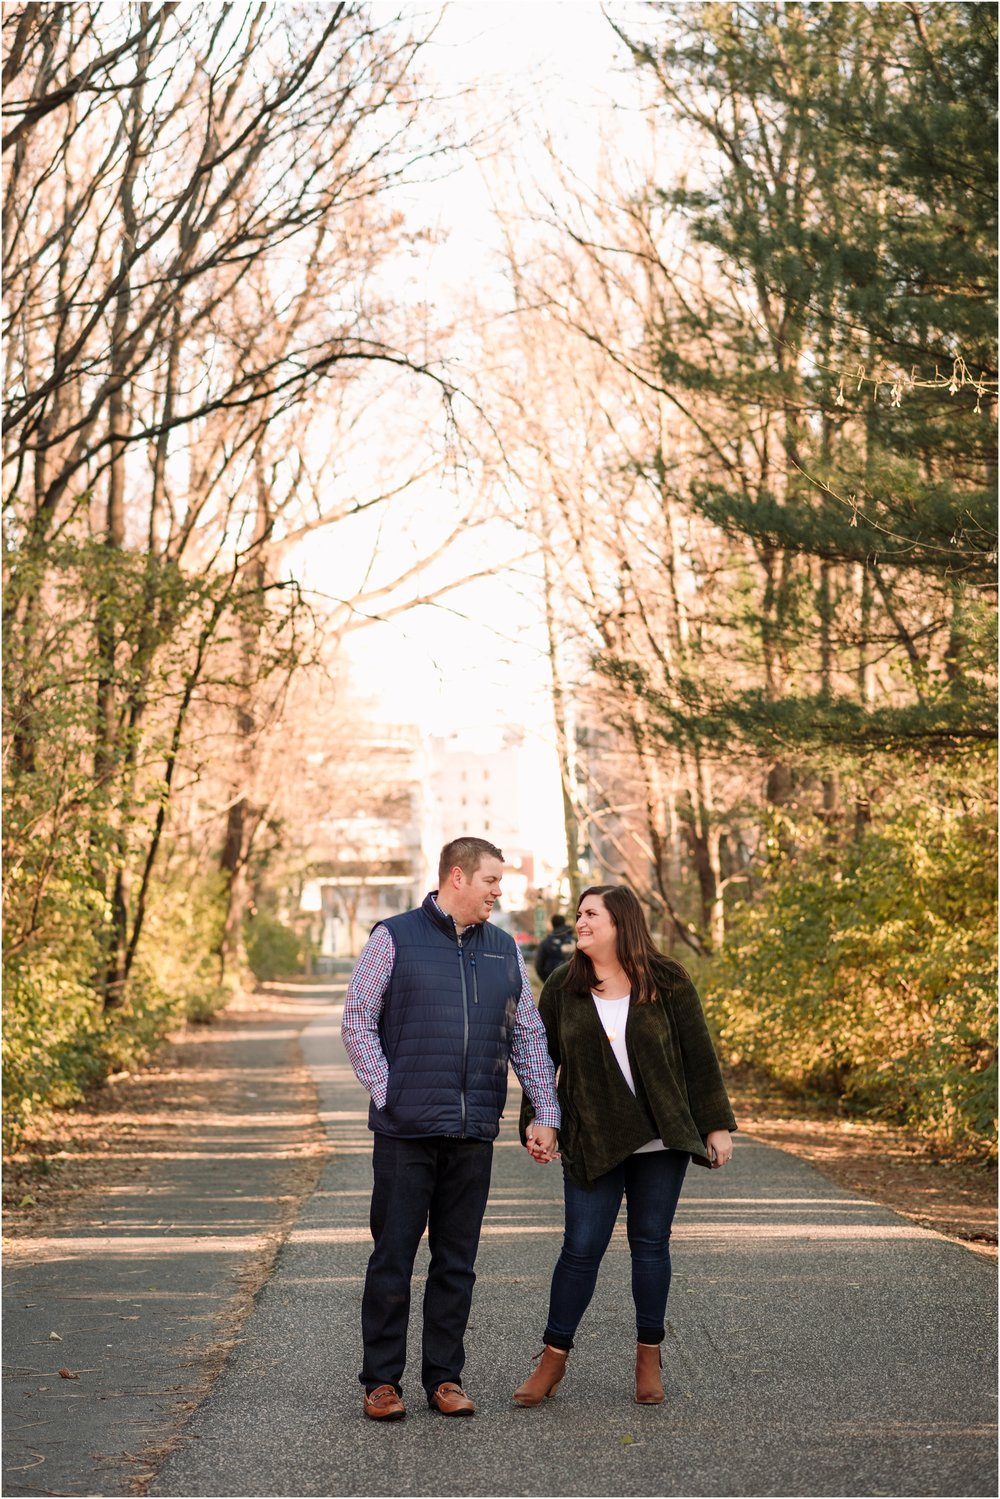 hannah leigh photography Engagement Session Bethesda MD_2547.jpg